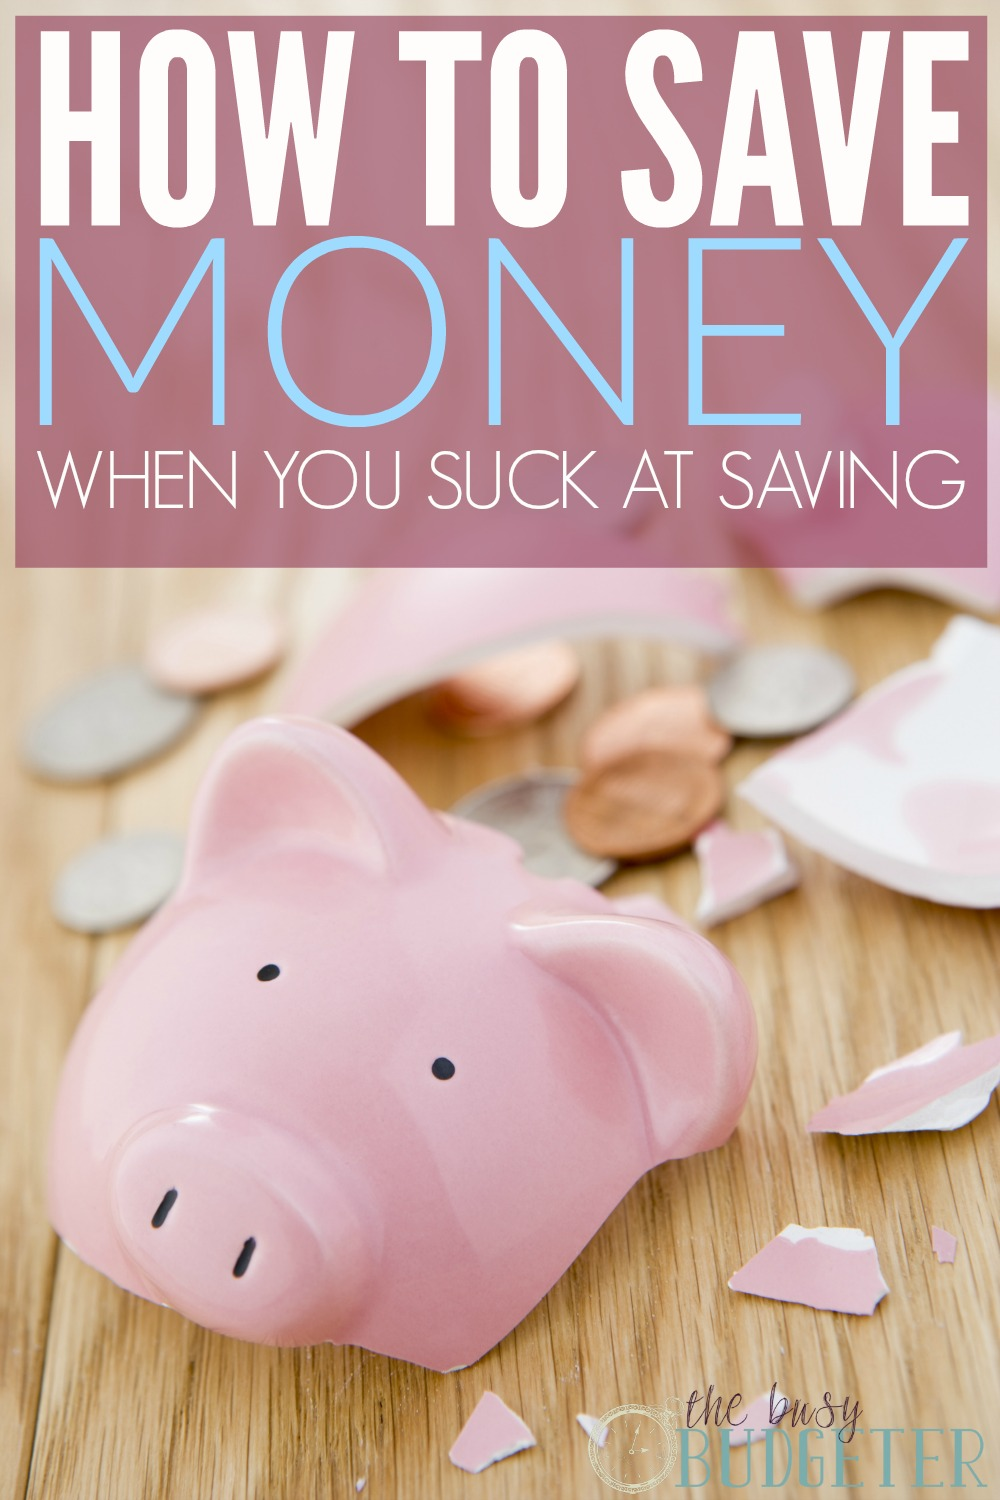 How to save money when you suck at saving